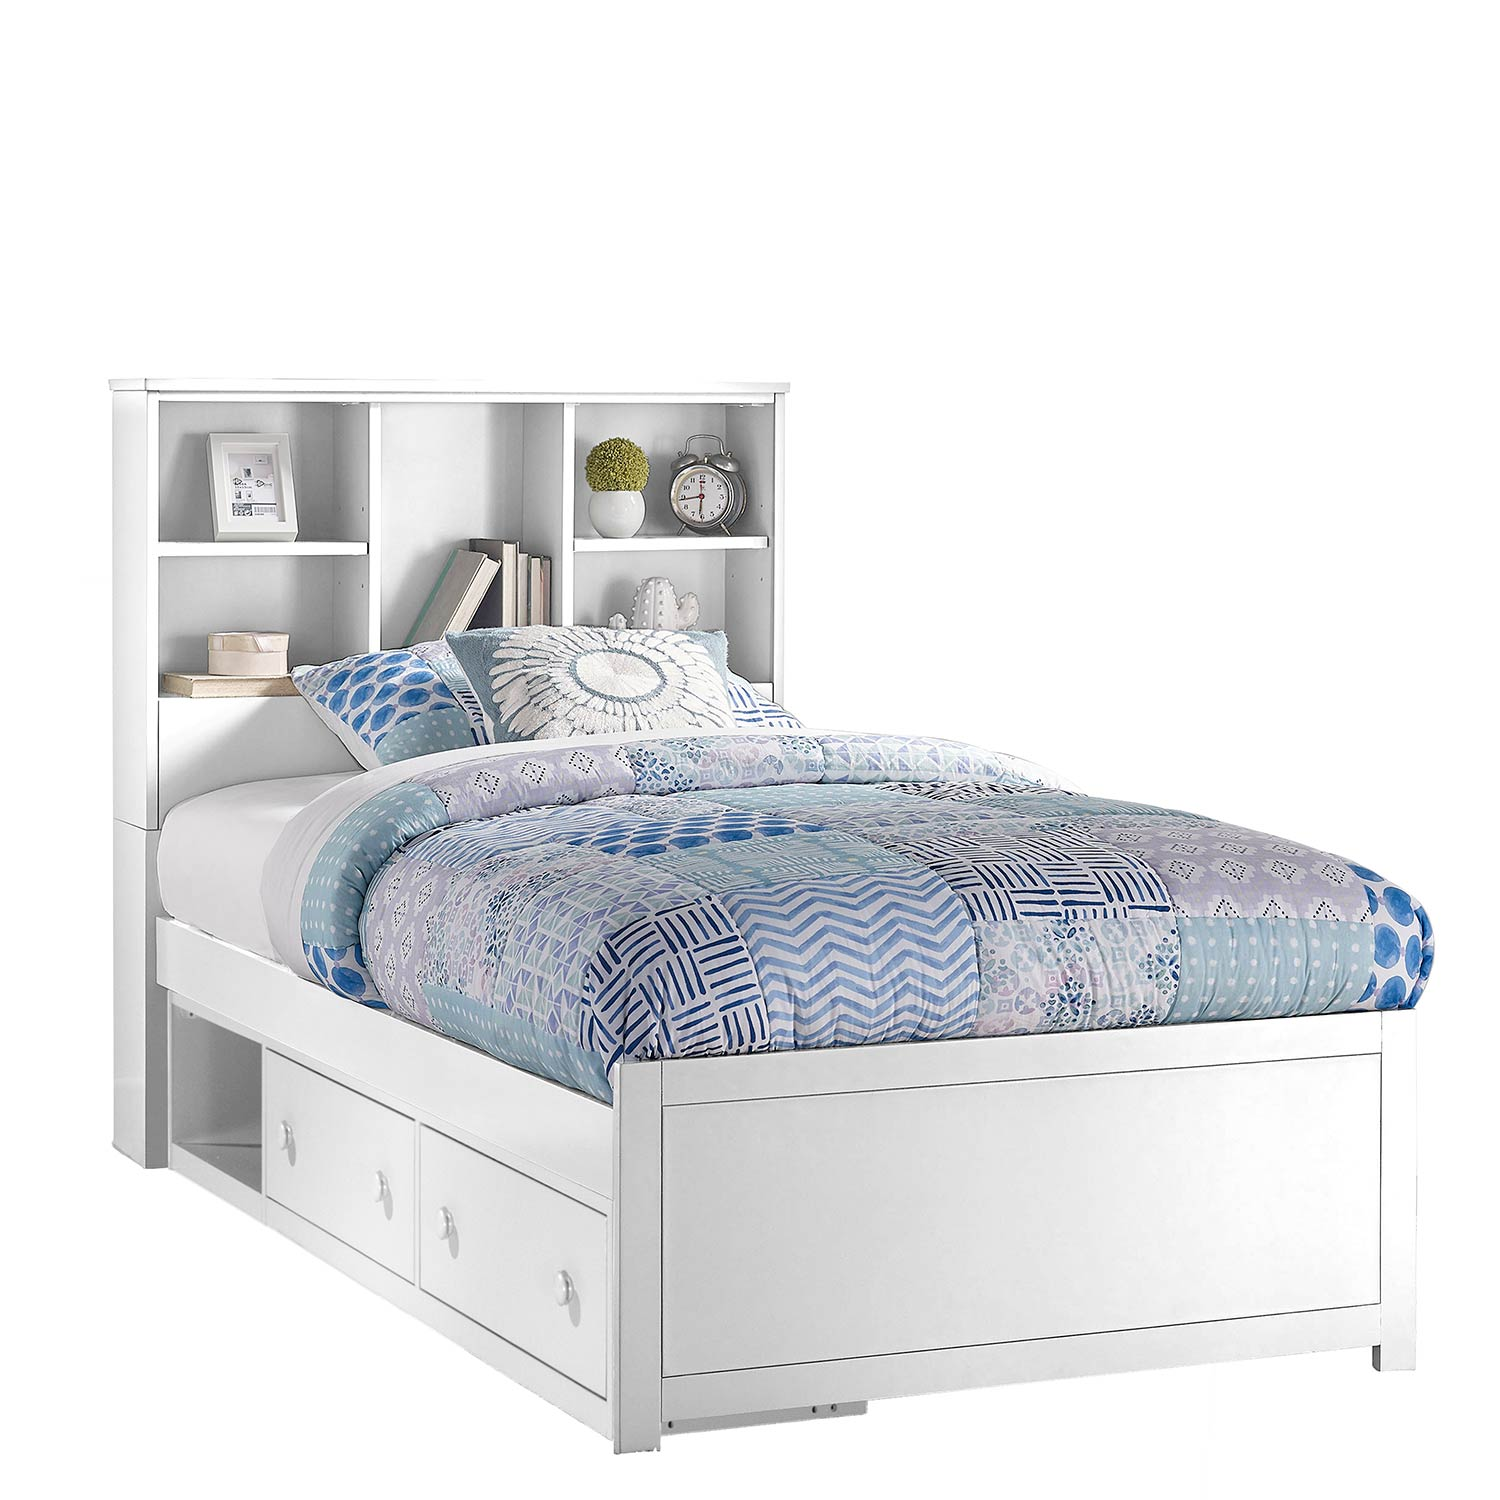 Hillsdale Caspian Twin Bookcase Bed with Storage Unit - White